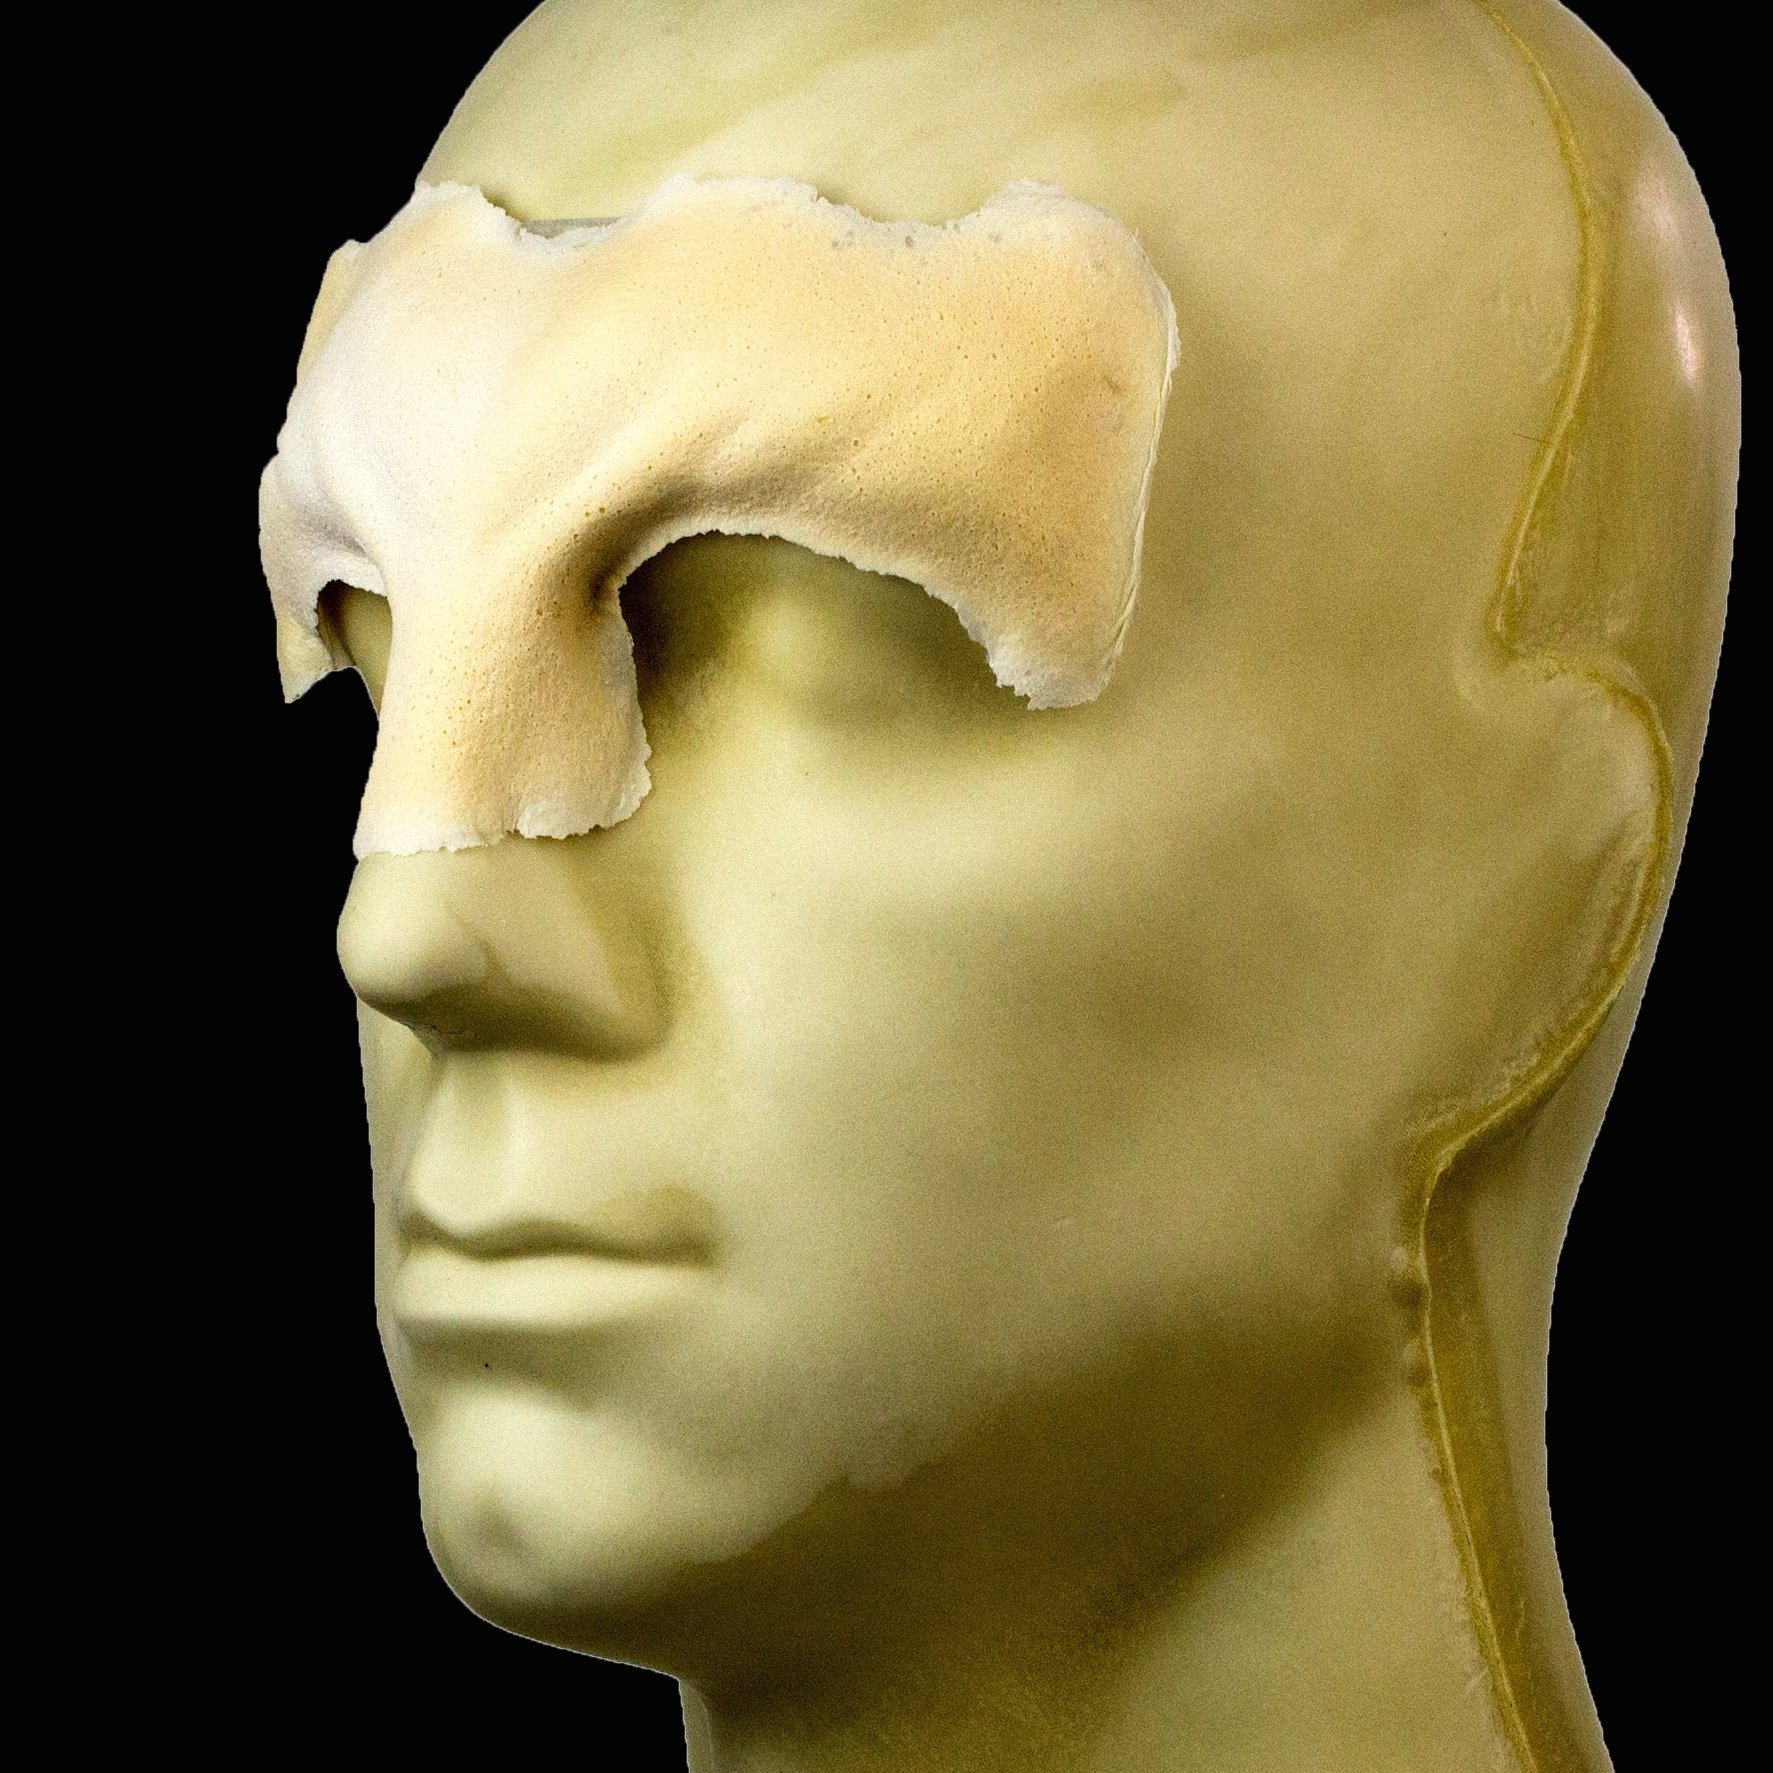 Rubber Wear Foam Latex Prosthetic - Leonine Forehead FRW-084 - Makeup and Theater FX